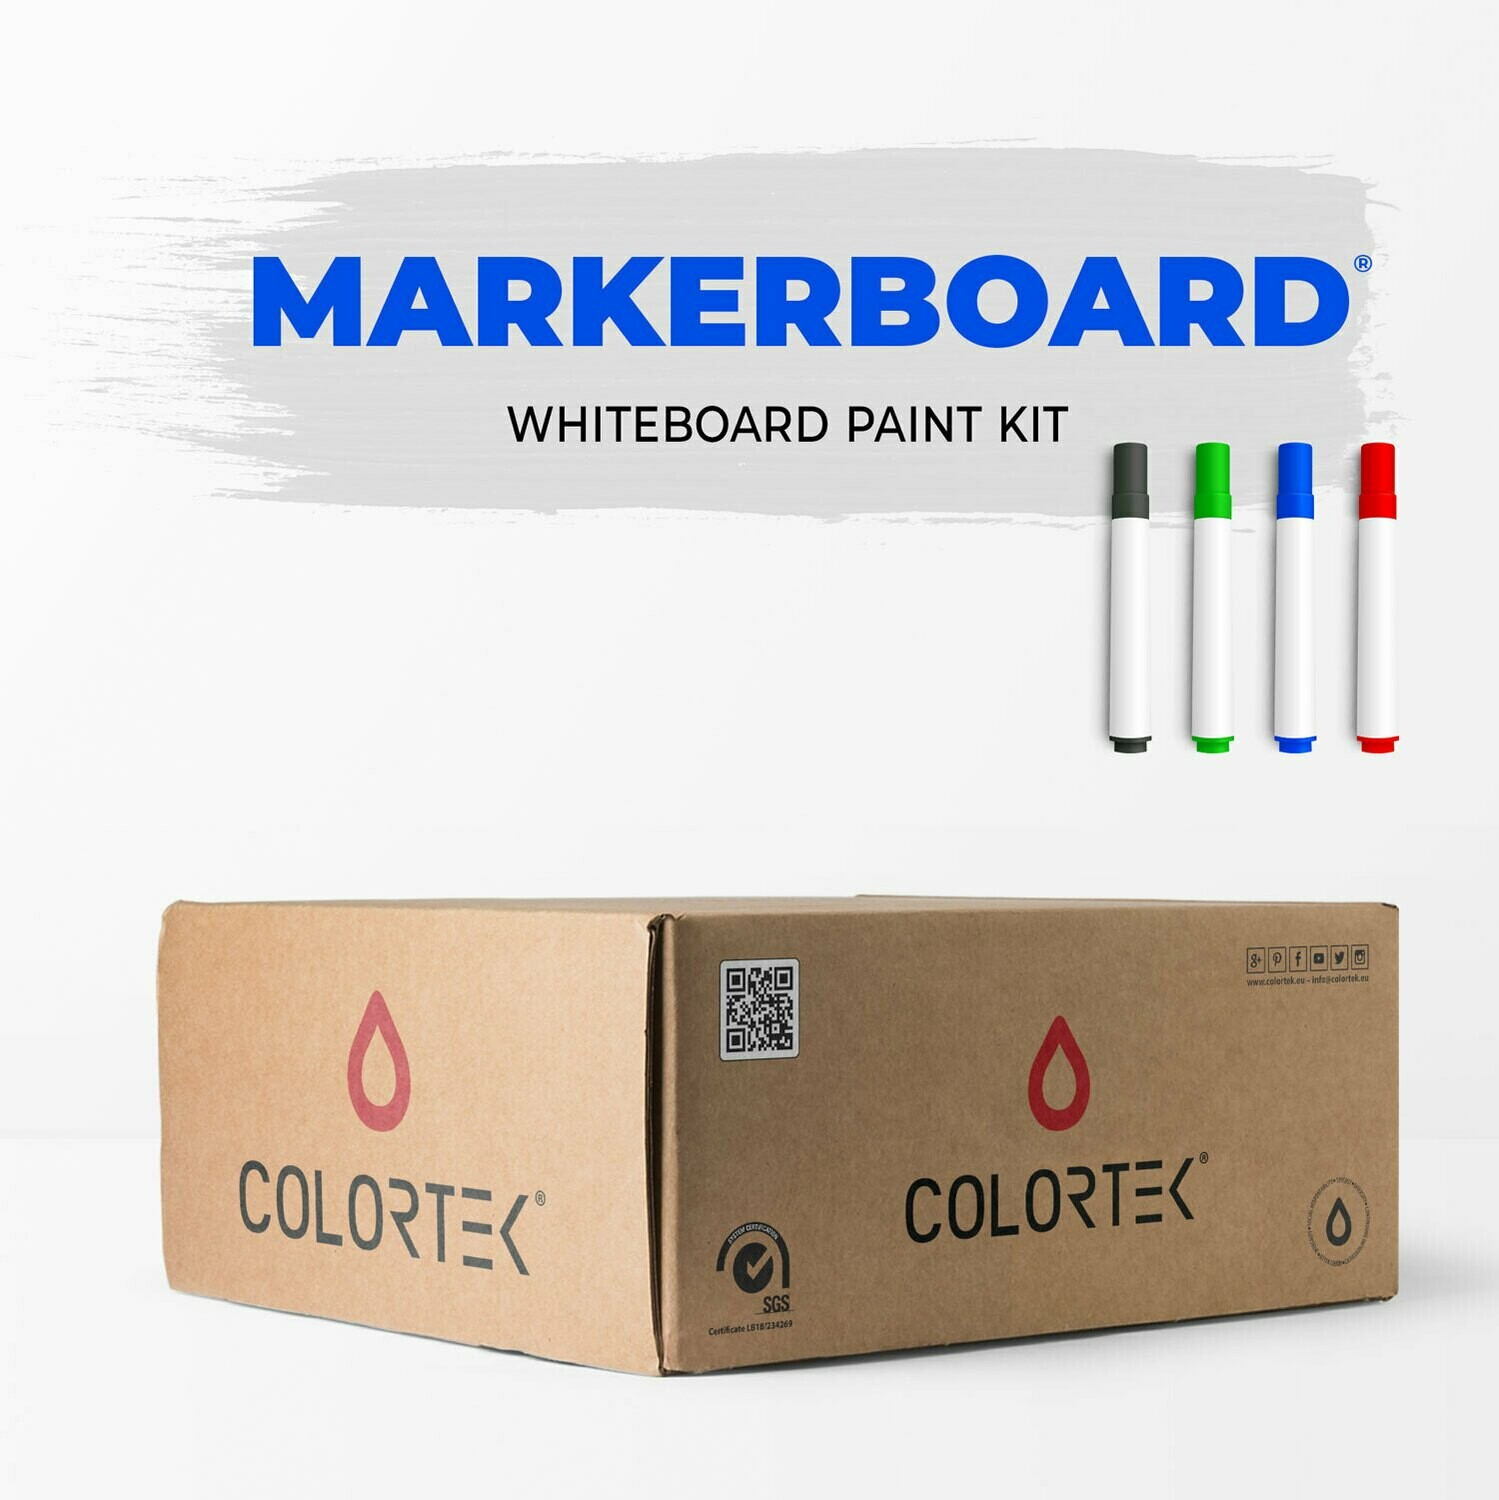 MarkerBoard - WhiteBoard Paint Kit for 4 sqm